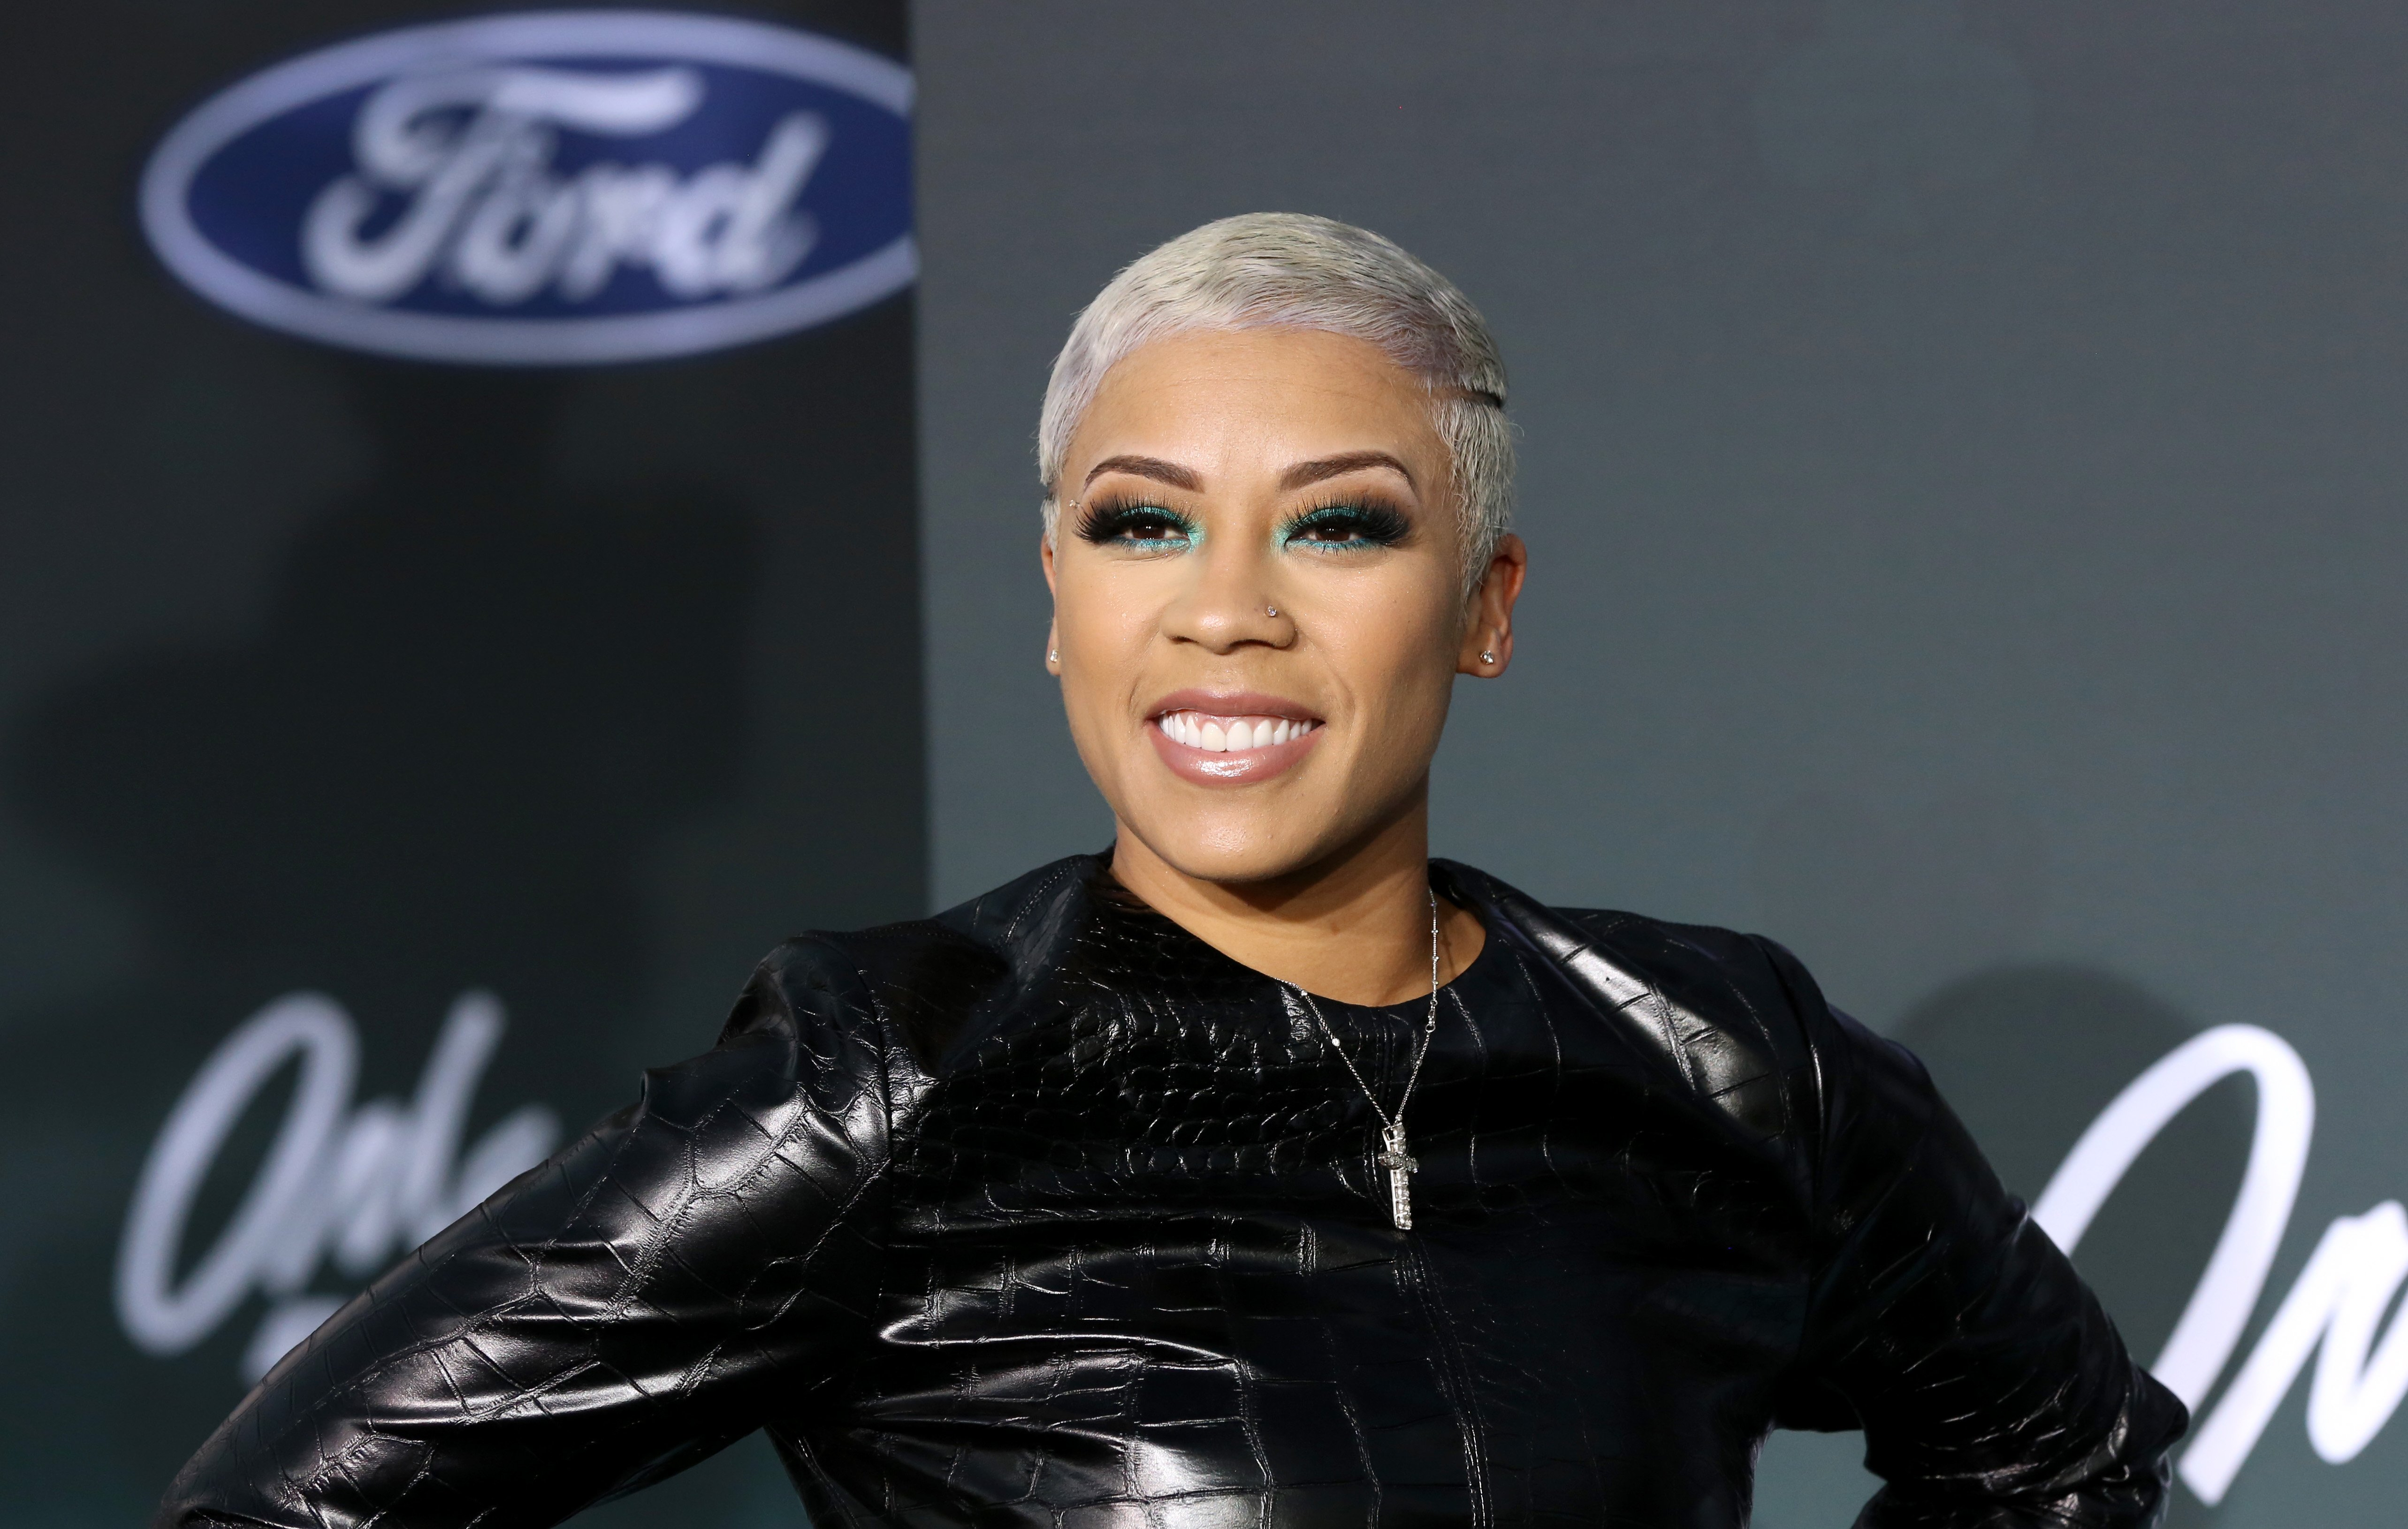 Keyshia Cole at the Soul Train Awards on Nov. 17, 2019 in Las Vegas | Photo: Getty Images